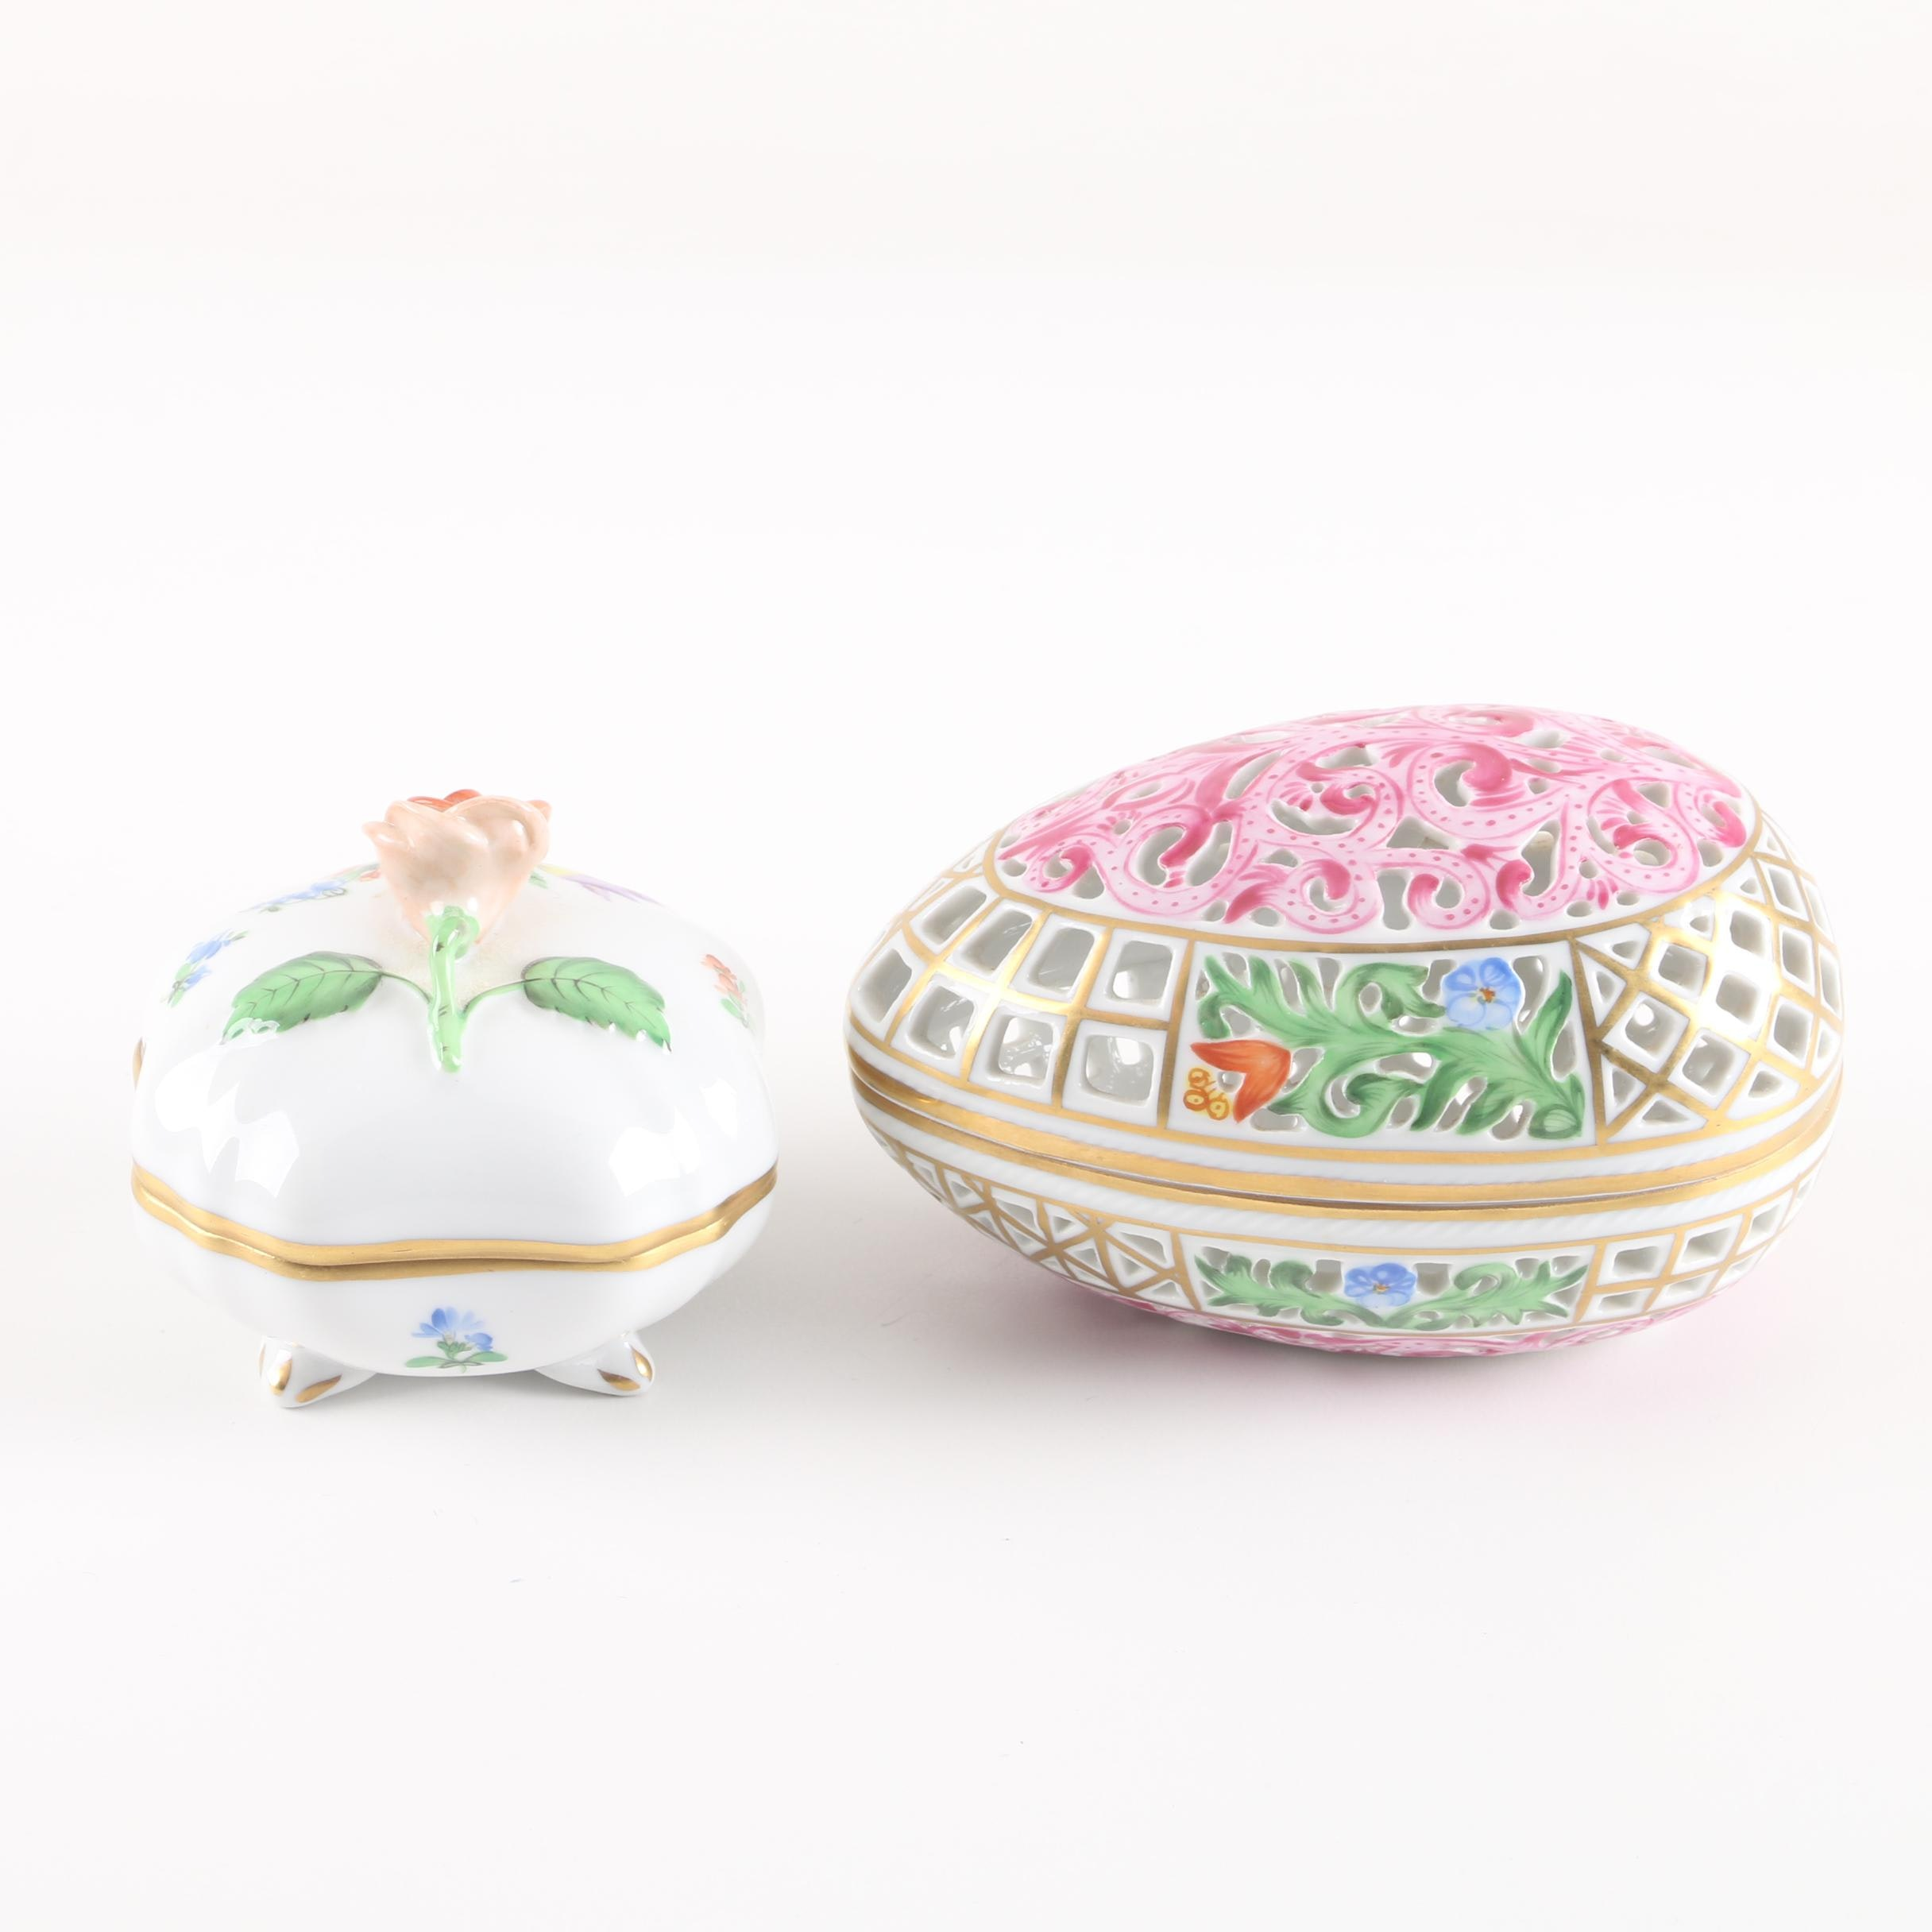 Herend Hungary Porcelain Trinket Boxes